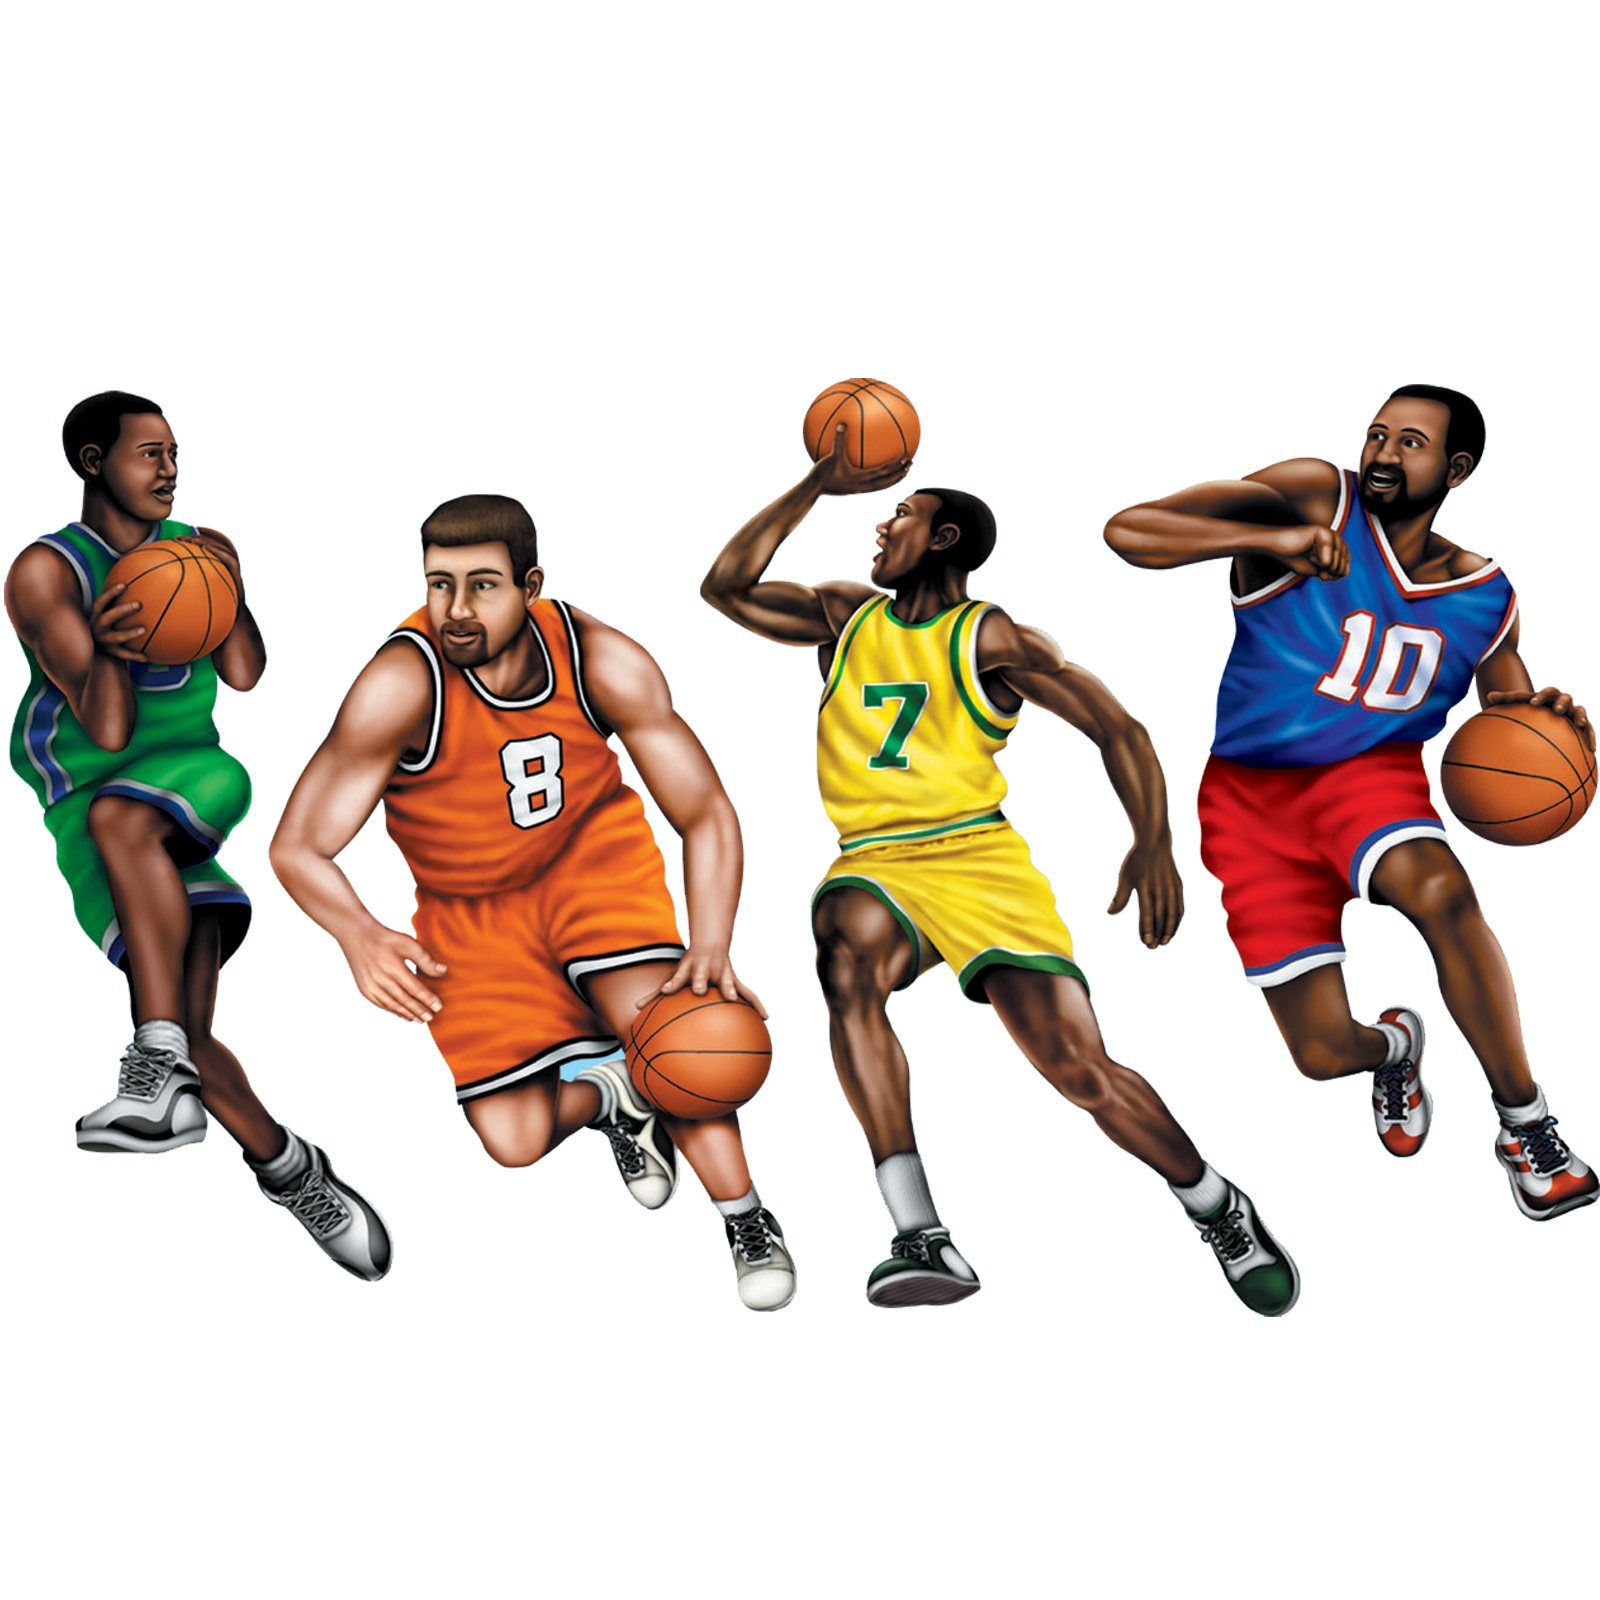 Hd clipart nba players - Basketball Players PNG HD